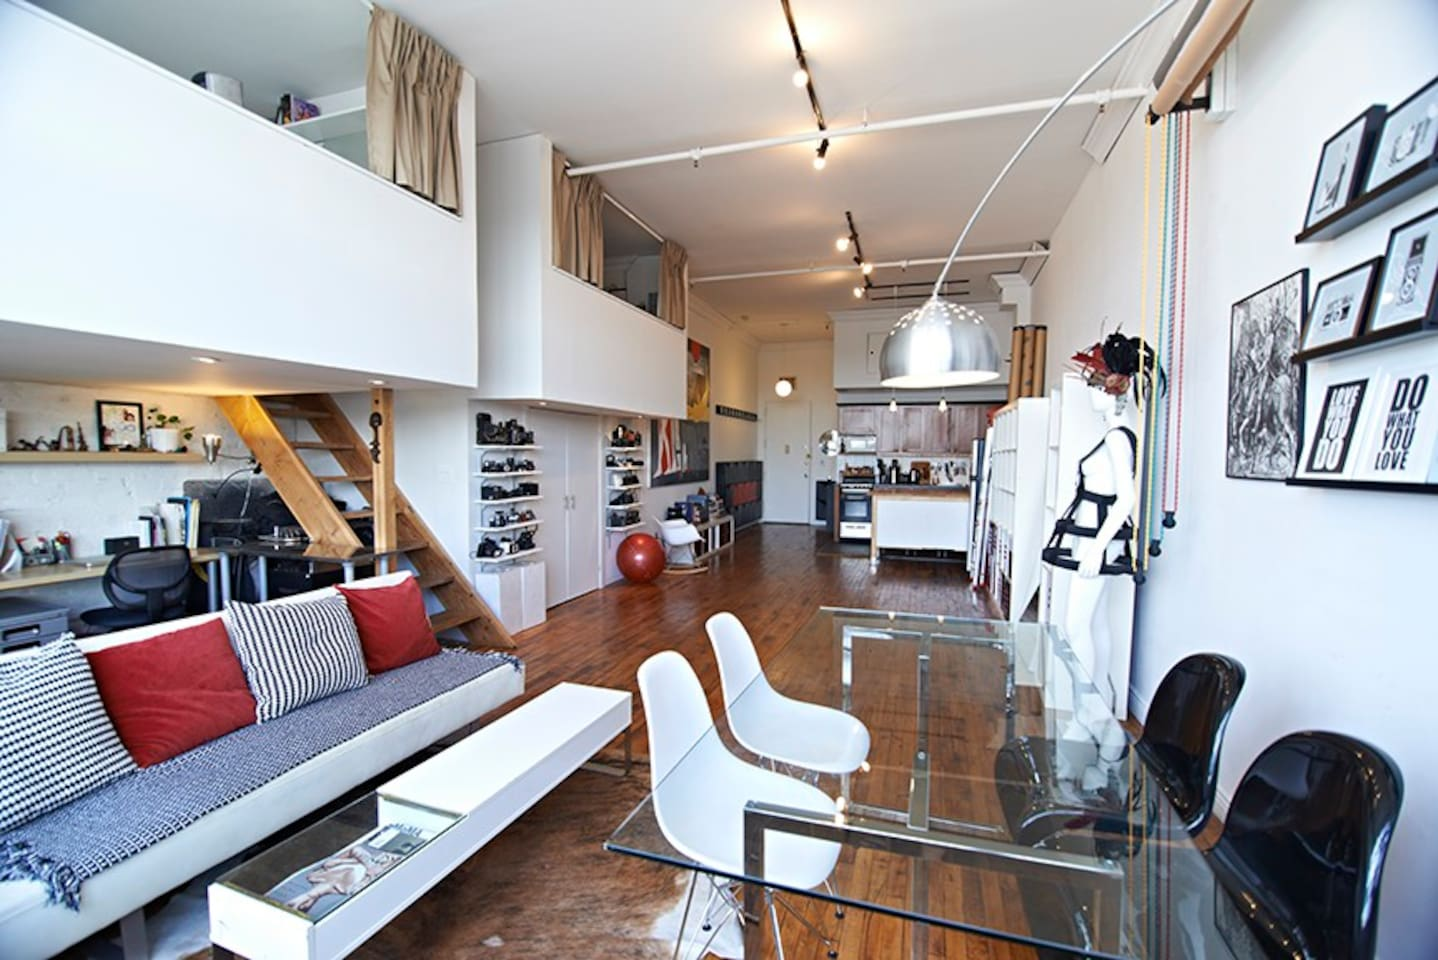 2 mezzanine bedrooms upstairs, dining and lounger area, kitchen on the back